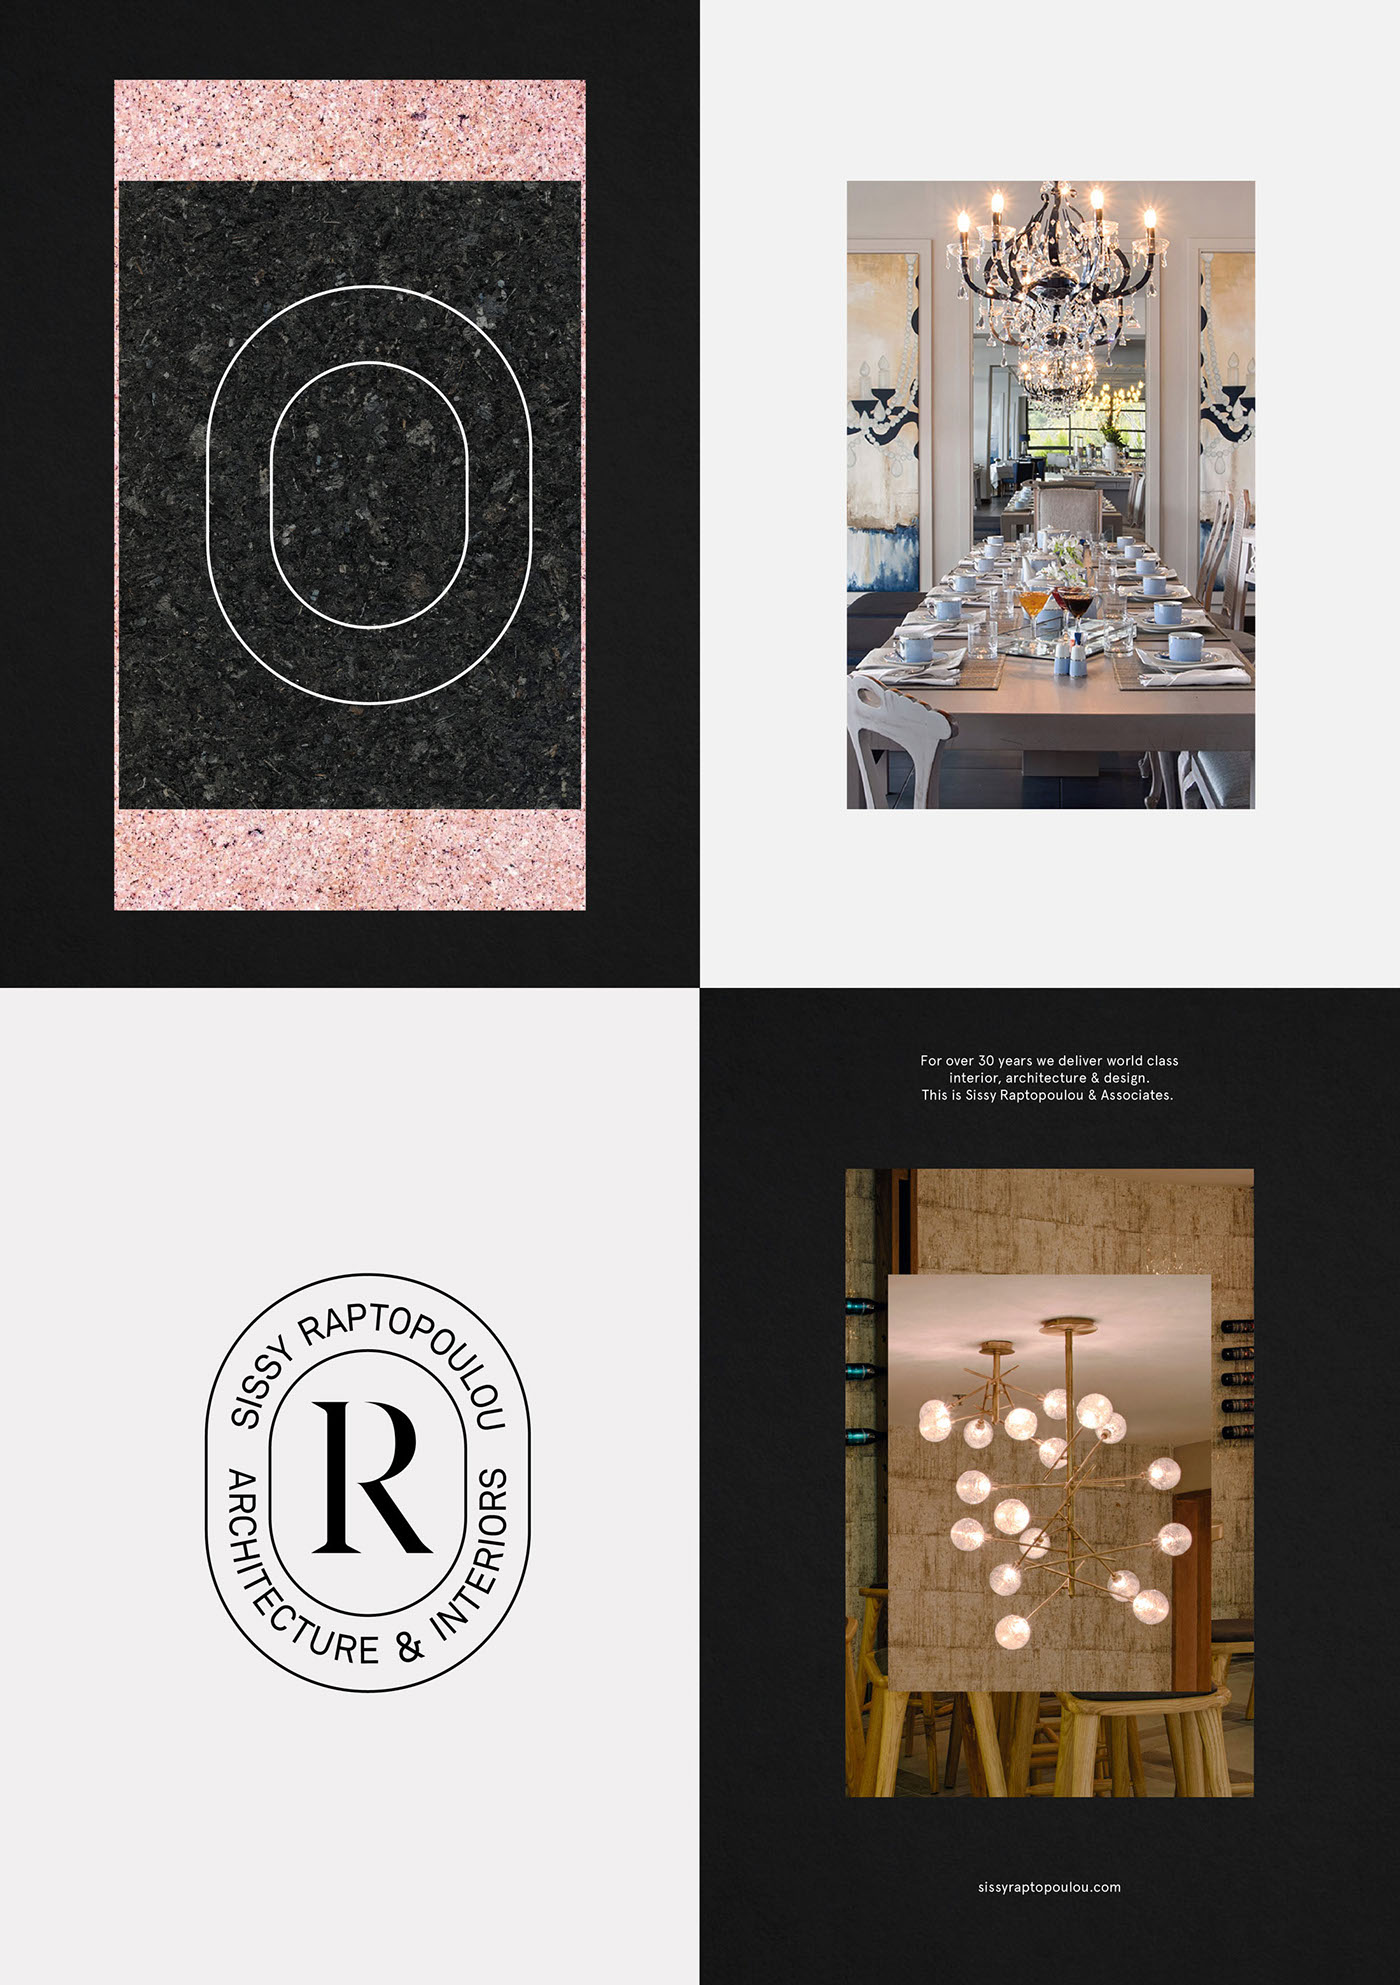 ... (The Design Ambassador) With Devising A Visual Identity That  Communicates New Personality For An Established Architectural U0026 Interior  Design Practice ...